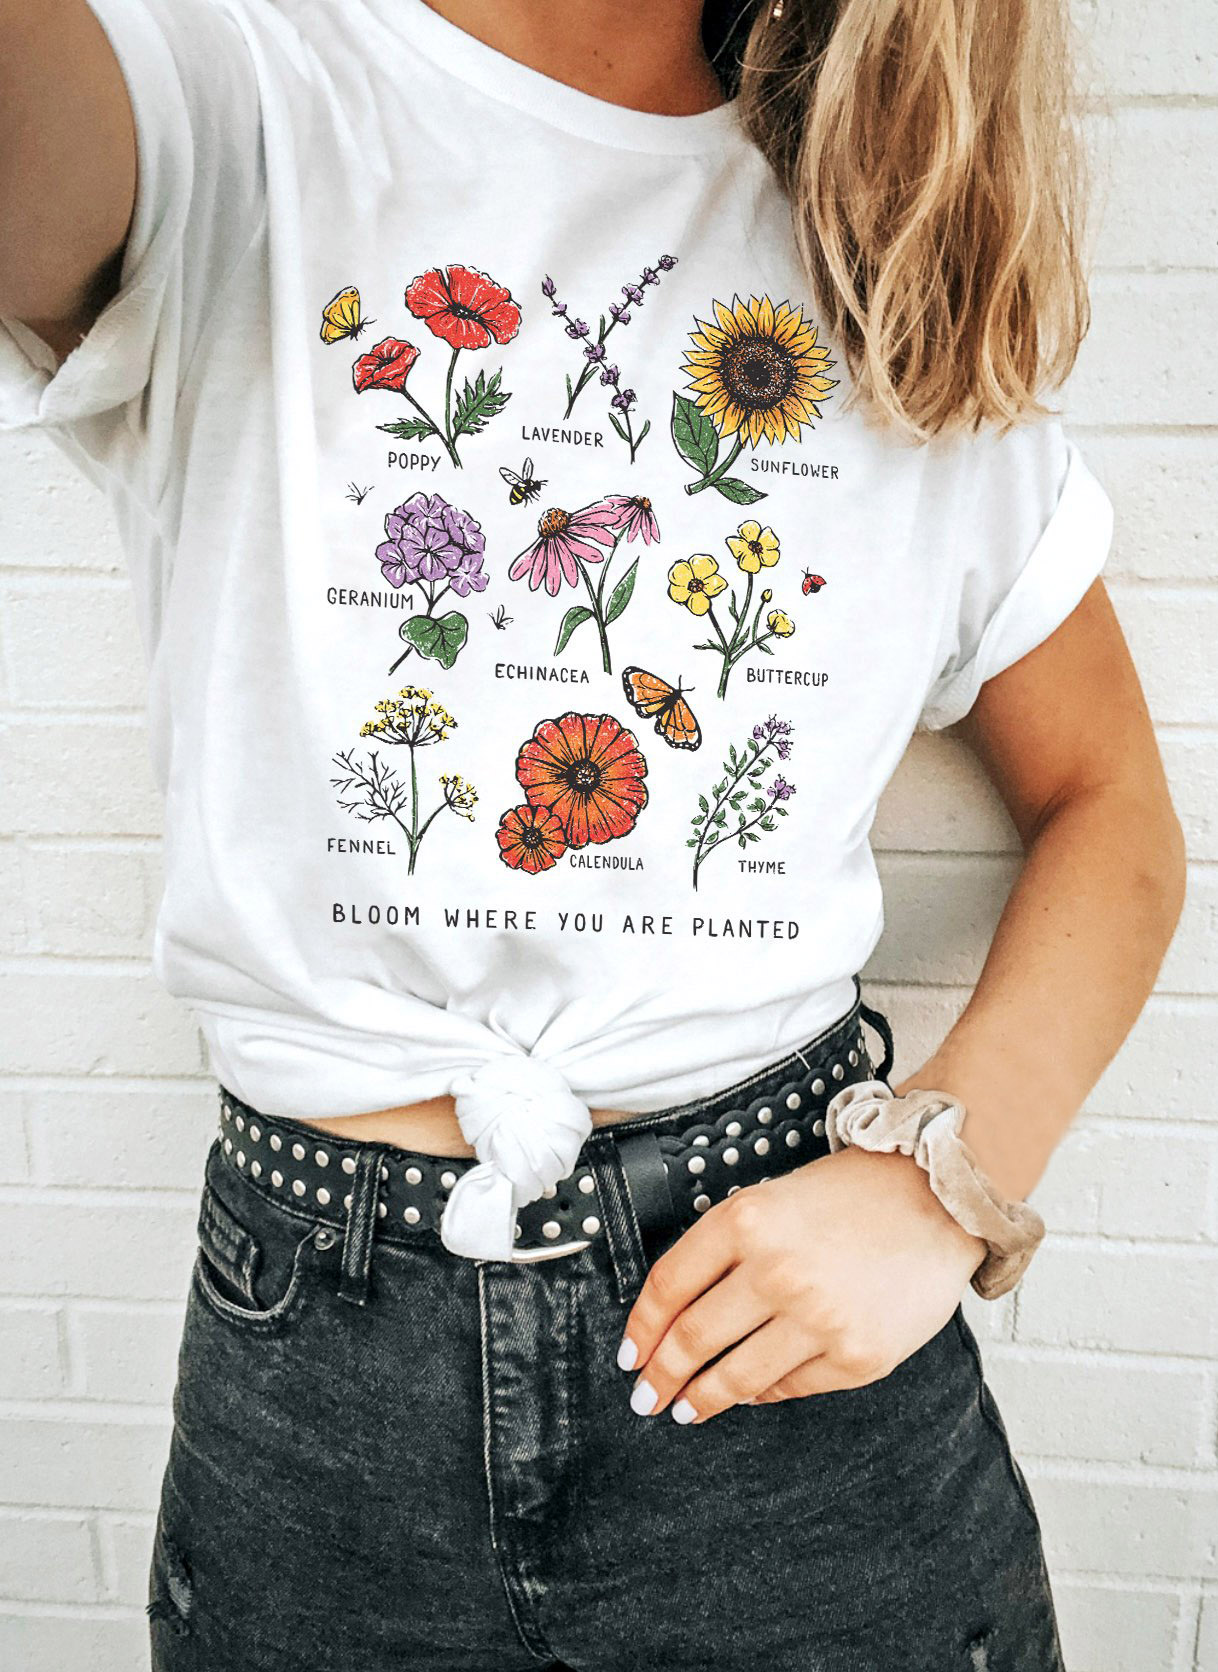 Bloom Where You Are Planted Women T Shirt Summer Sunflower Flower T Shirt Graphic Tee Save The Bees Hipsters Grunge Top